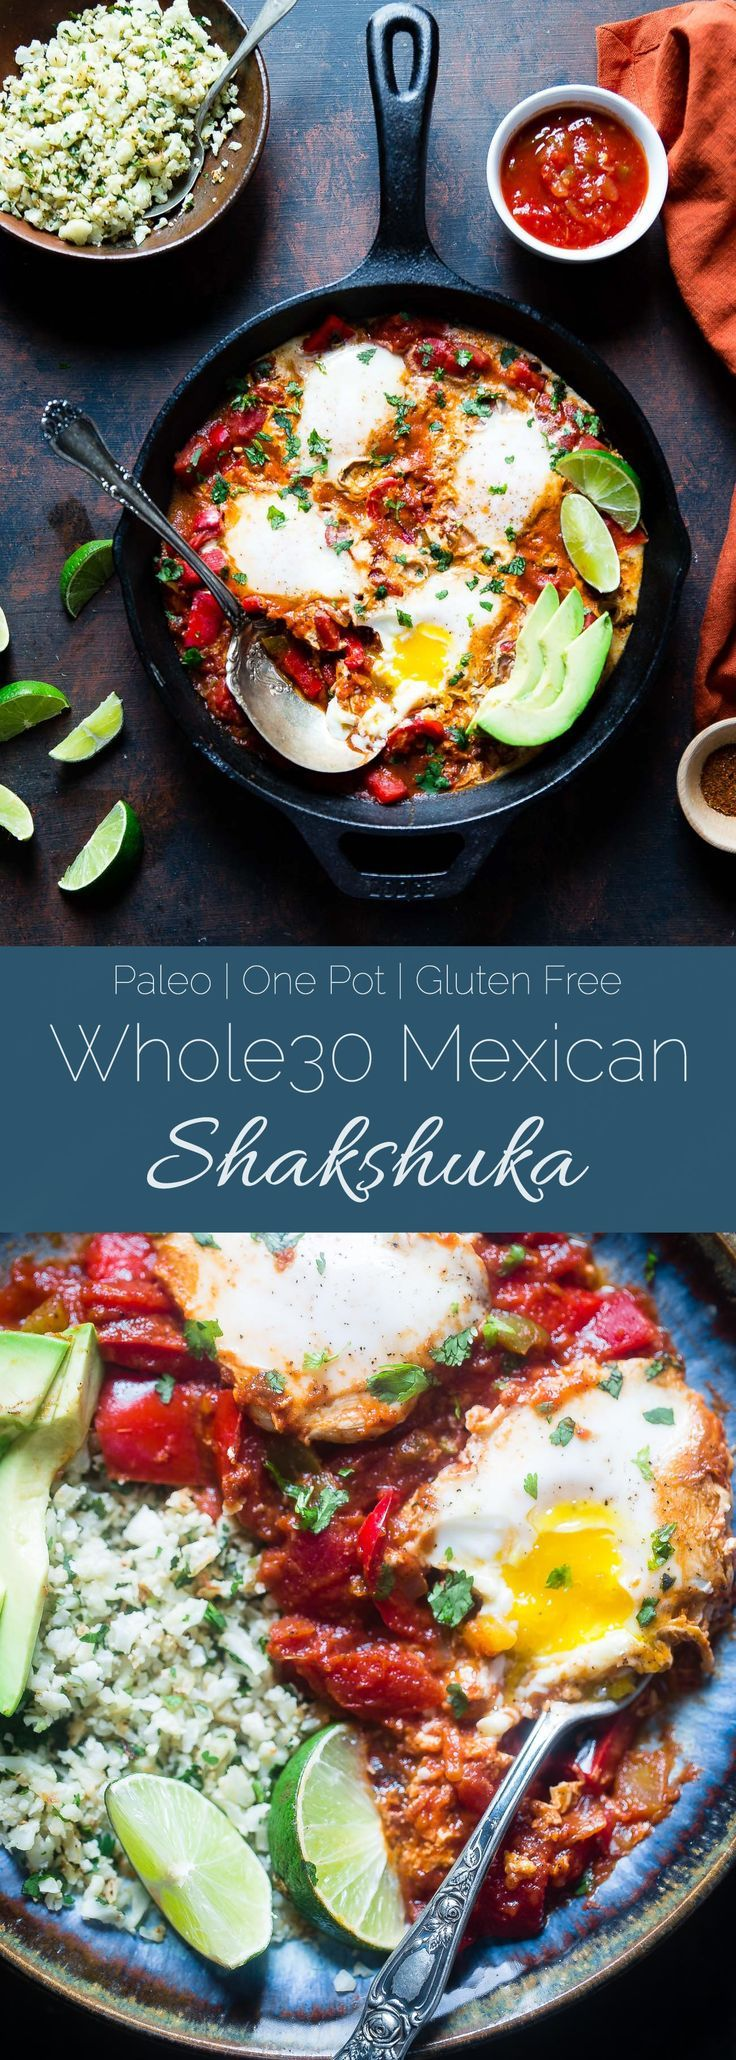 Whole30 Mexican Shakshuka - This quick and easy, gluten free Shakshuka recipe has a little, spicy Mexican twist! It's a lower carb, healthy and paleo friendly dinner or breakfast! | Foodfaithfitness.com | @FoodFaithFit